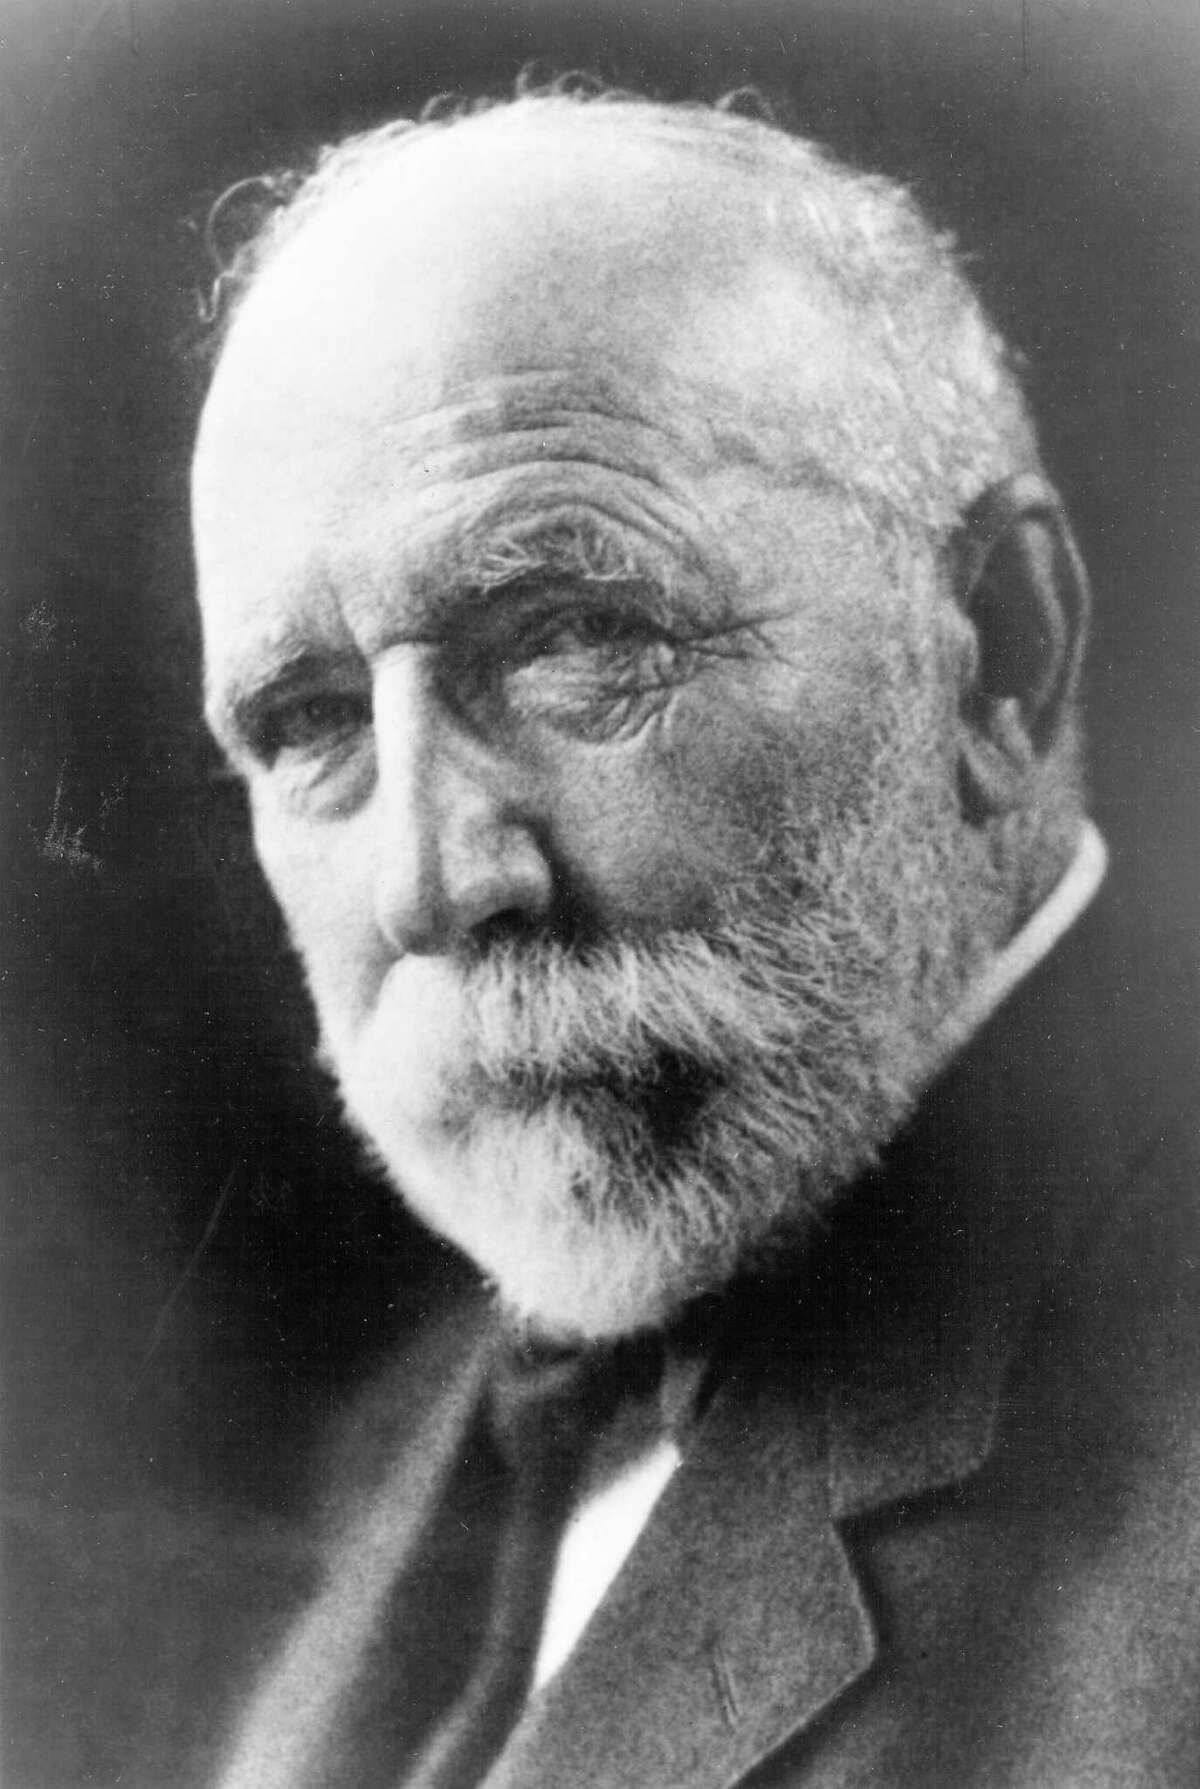 Forbes recently published its annual list of America's richest families and more than a couple are from Seattle and the greater Northwest. Click through this slideshow to see which Northwest families made the list and then see the top 10 richest families in the U.S.  The Weyerhaeuser family Timber baron Frederick Weyerhaeuser, pictured, started his fortune 1900 with 15 partners and 900,000 acres of timberland. Since then, the company has made its mark in the forestry industry and beyond. Timber company Weyerhaeuser, based in Federal Way, now controls 7 million acres of land in America. Forbes ranked the Weyerhaeusers as the country's 149th richest family.  Net worth: $1.7 billion.  Estimated number of family members: 250.